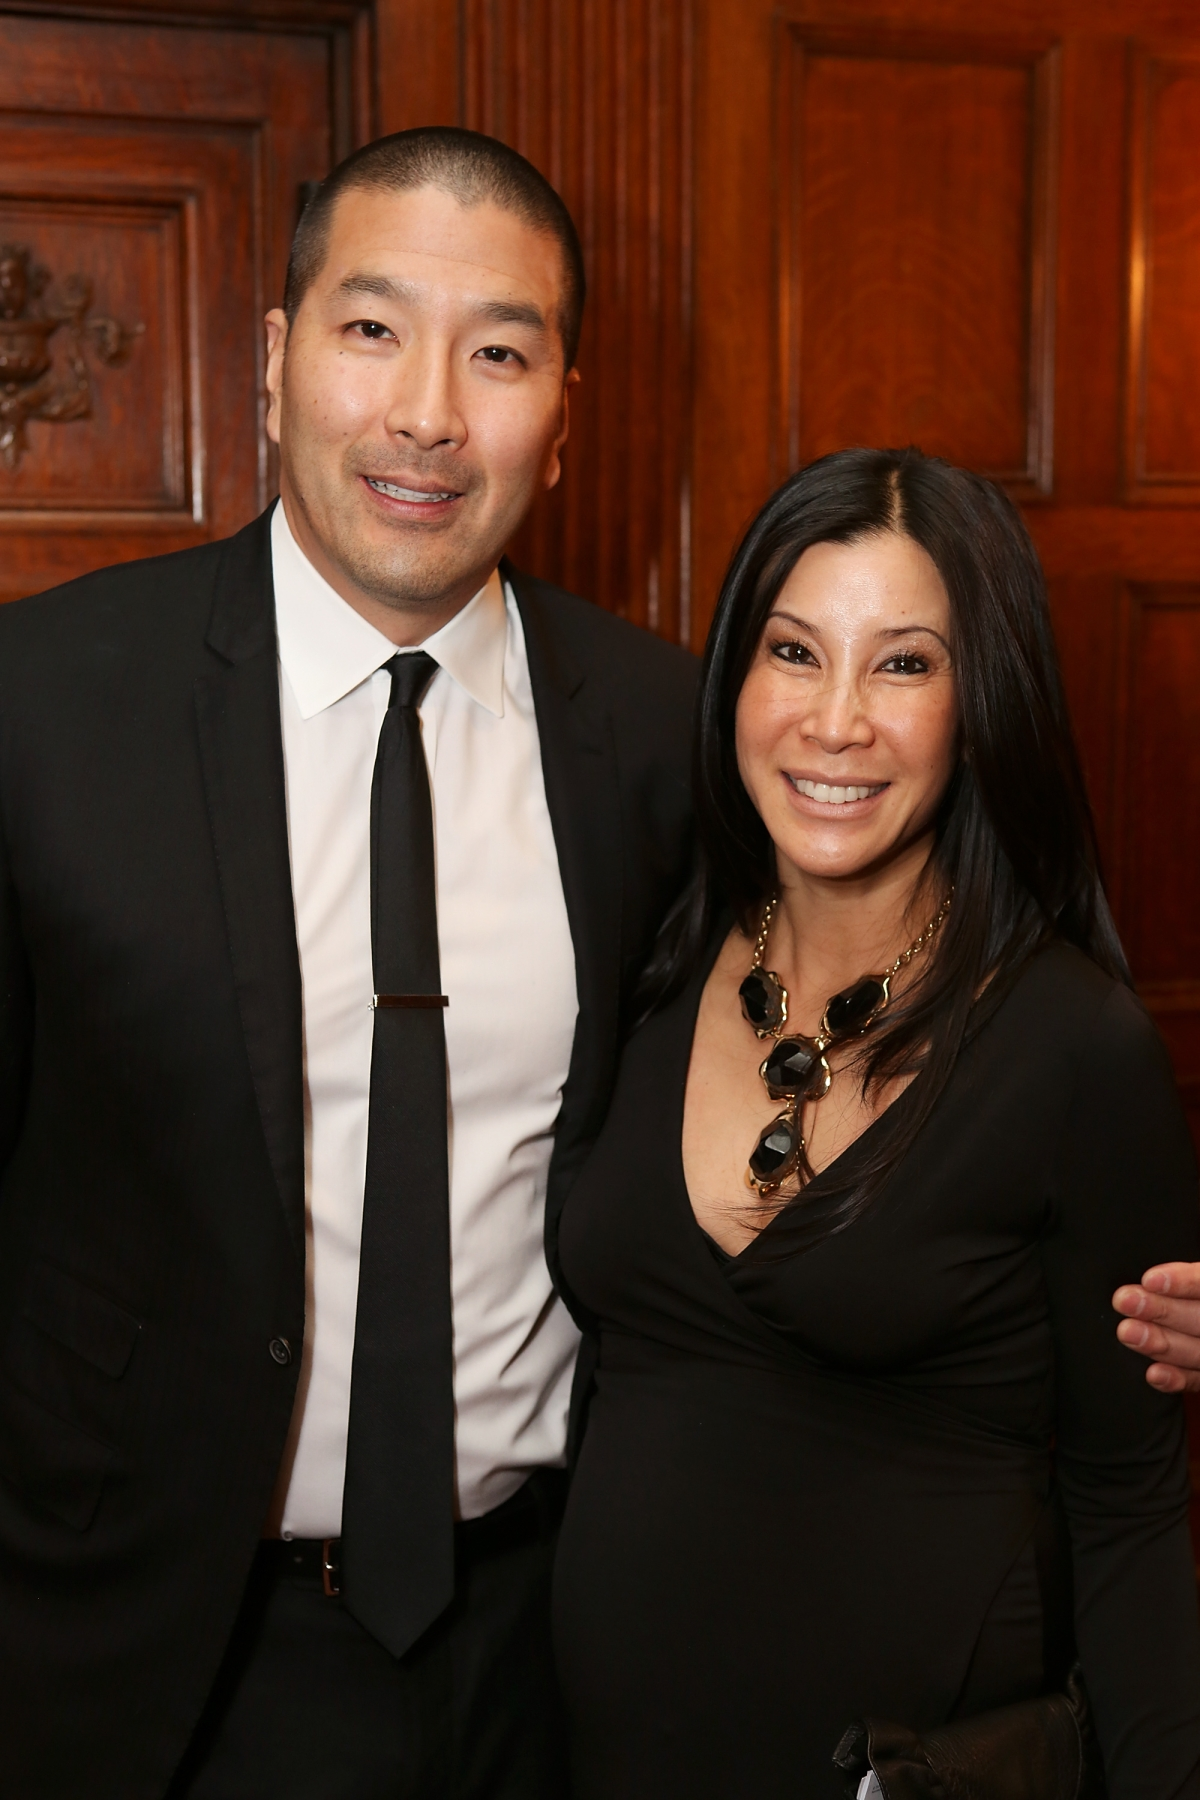 From left, Dr. Paul Song and host journalist Lisa Ling pose during the Asia Society Southern California 2013 Annual Gala held at the Millennium Biltmore Hotel on Tuesday, February 19, 2013 in Los Angeles, Calif. (Photo by Ryan Miller/Capture Imaging)